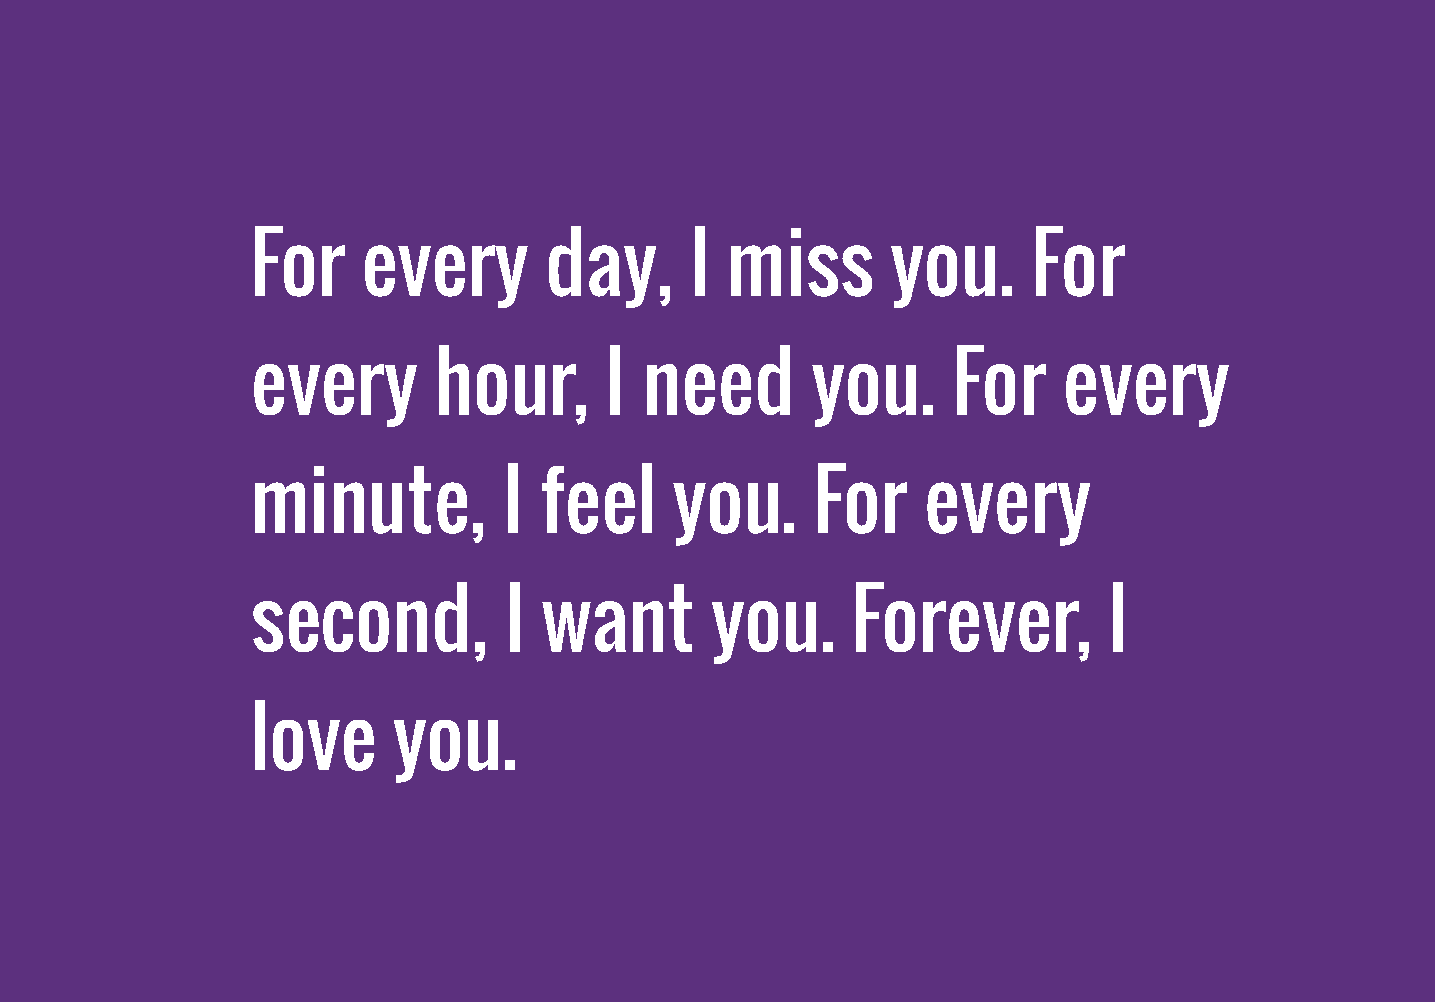 I Love You Quotes For Him Http://www.quotesmeme.com/quotes